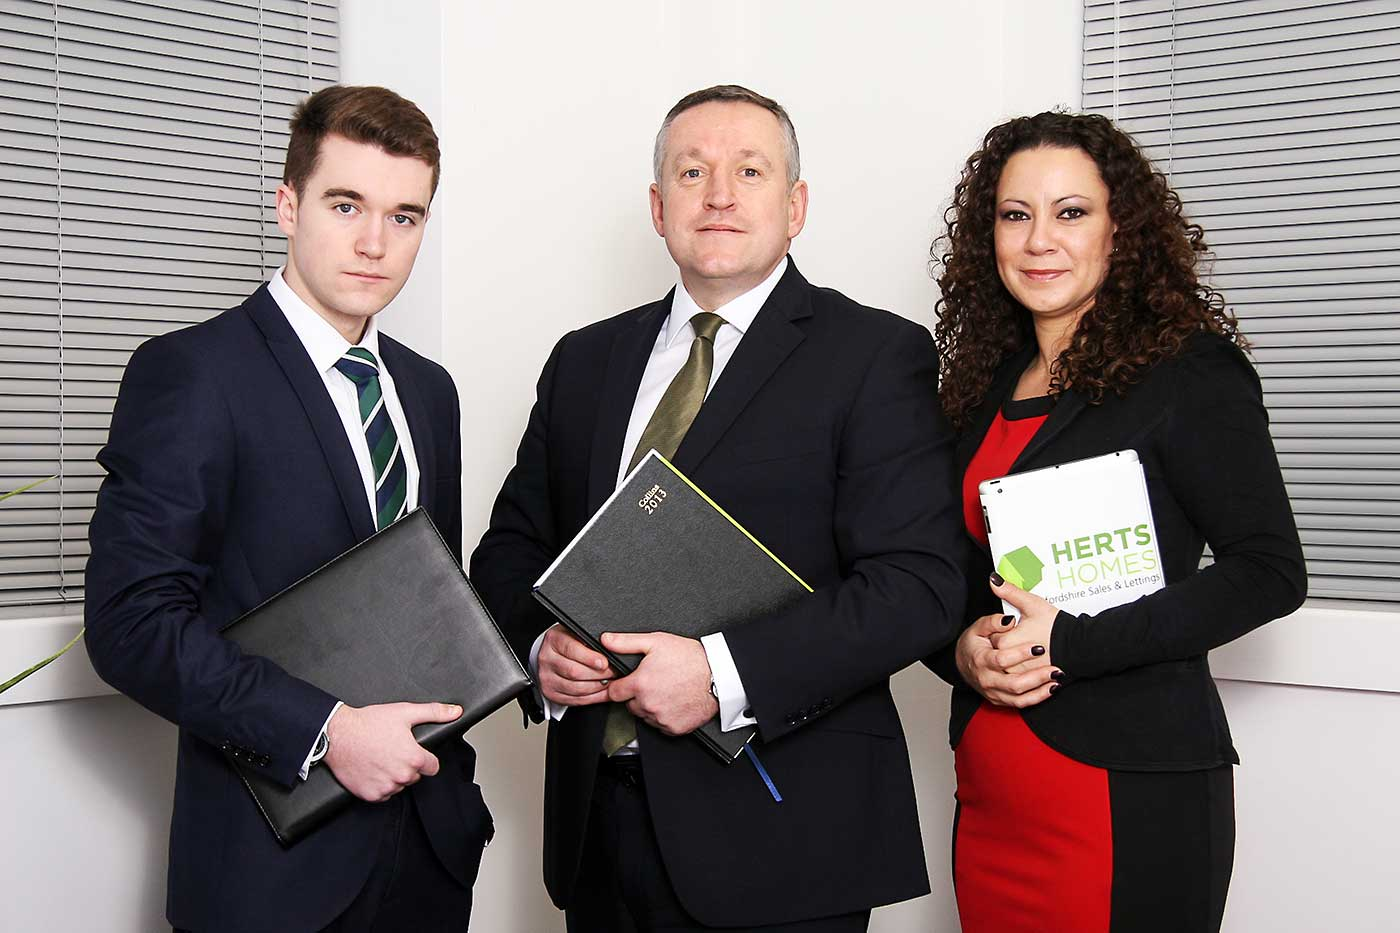 Herts-Homes-team-portraits.jpg